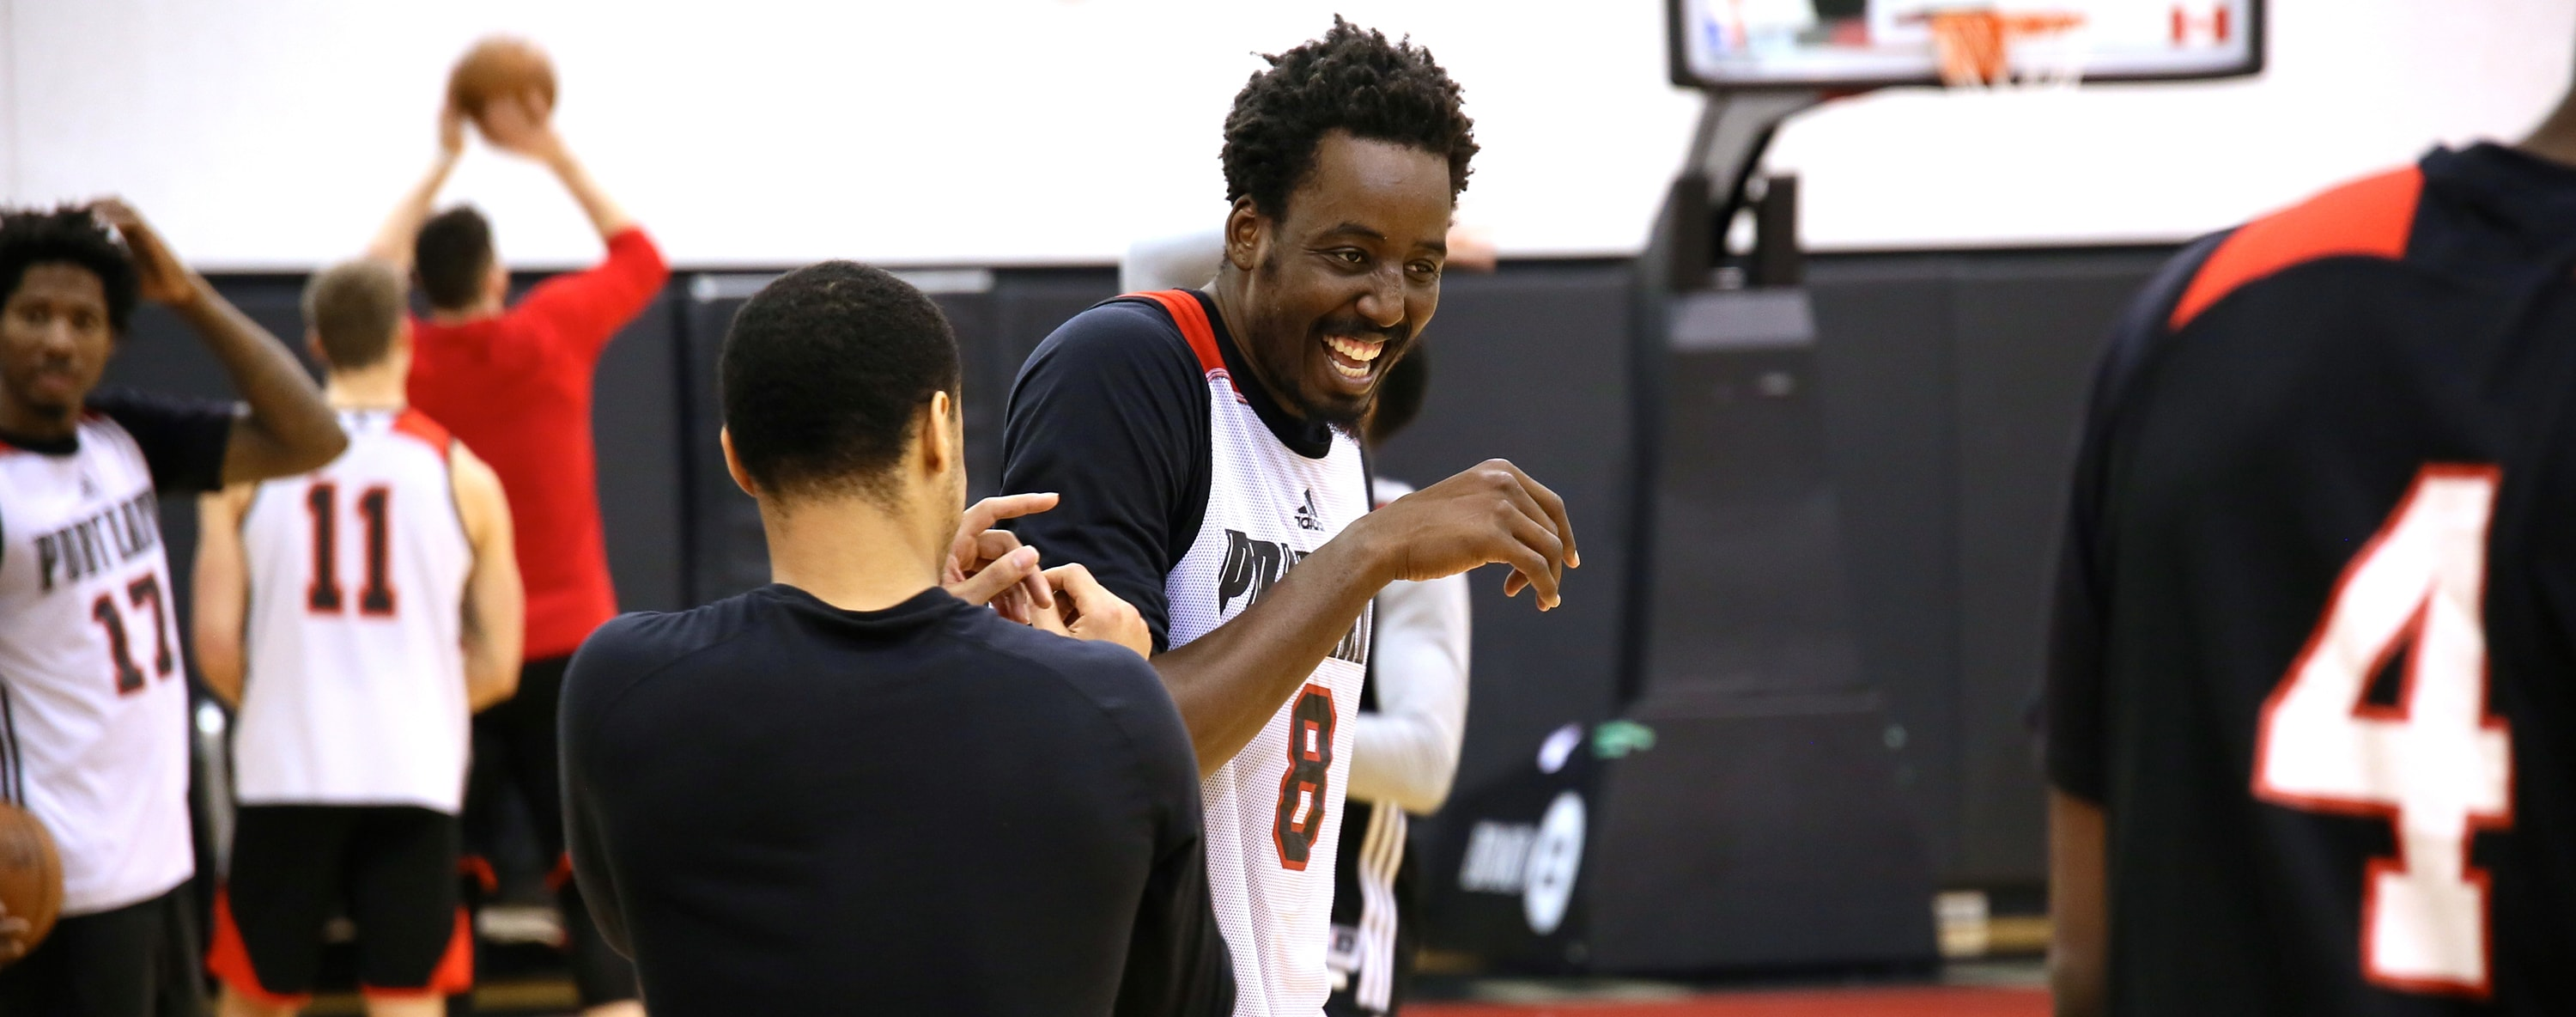 Practice Report: Aminu Upgraded To Probable Napier Stays Ready And Stotts Channels Costanza